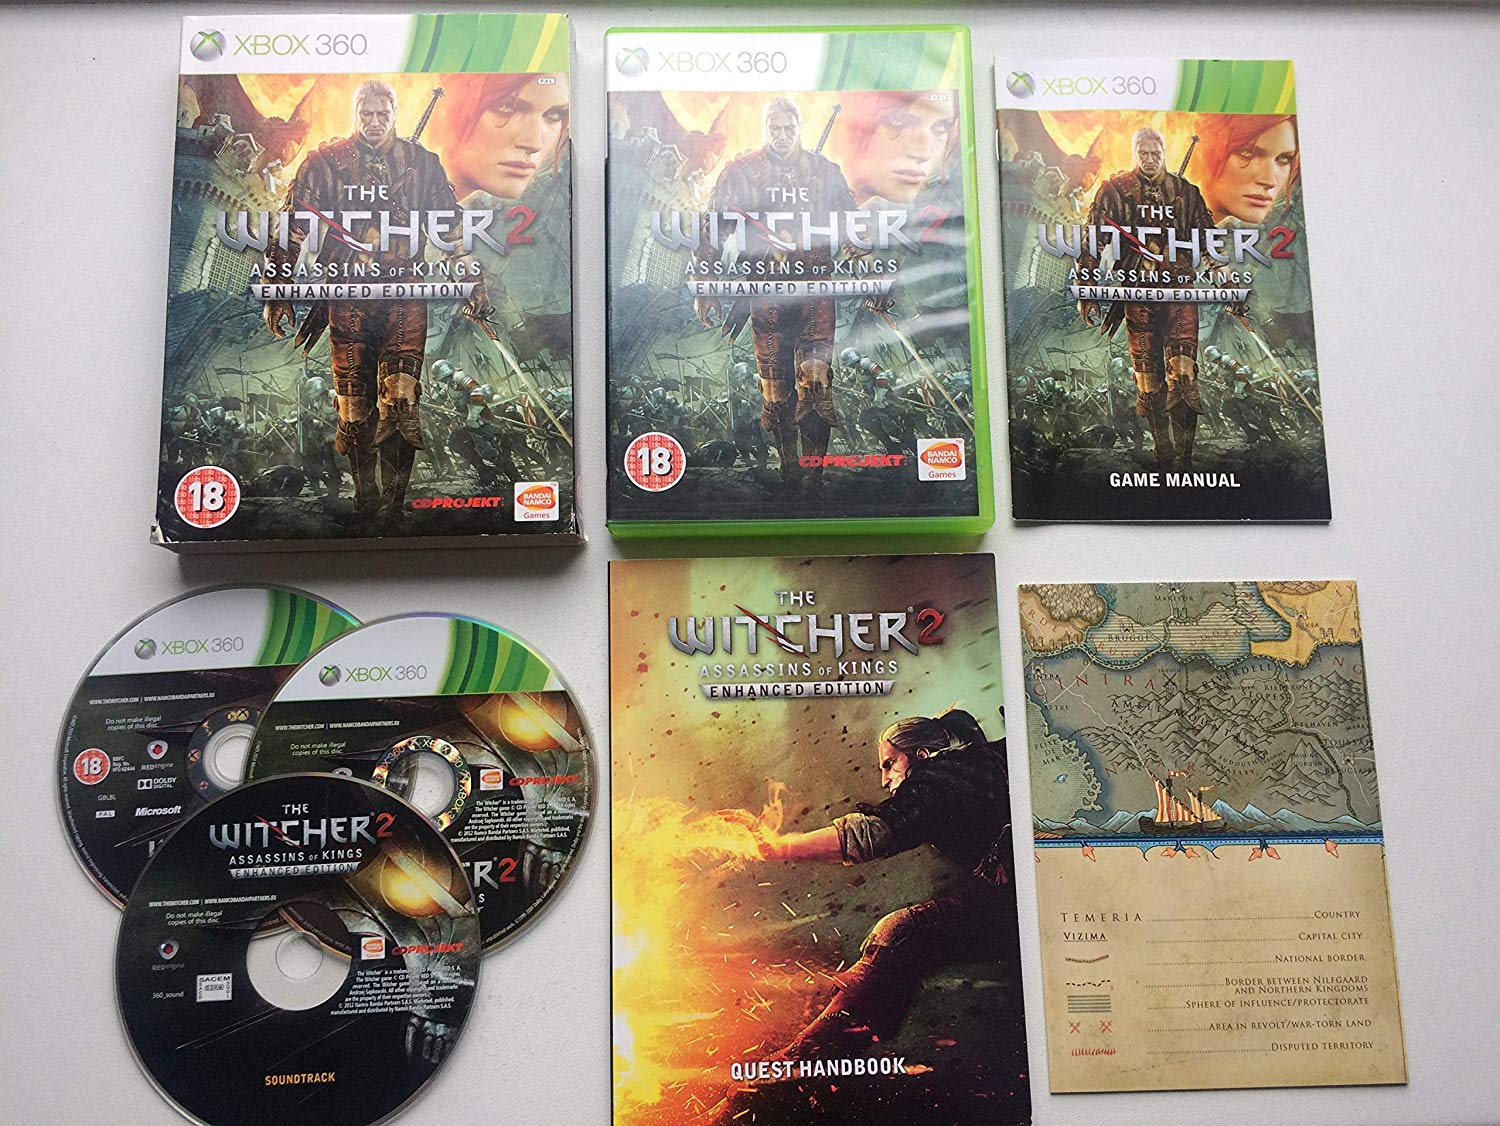 The Witcher 2: Assassins of Kings -  Enhanced Edition (Xbox 360)